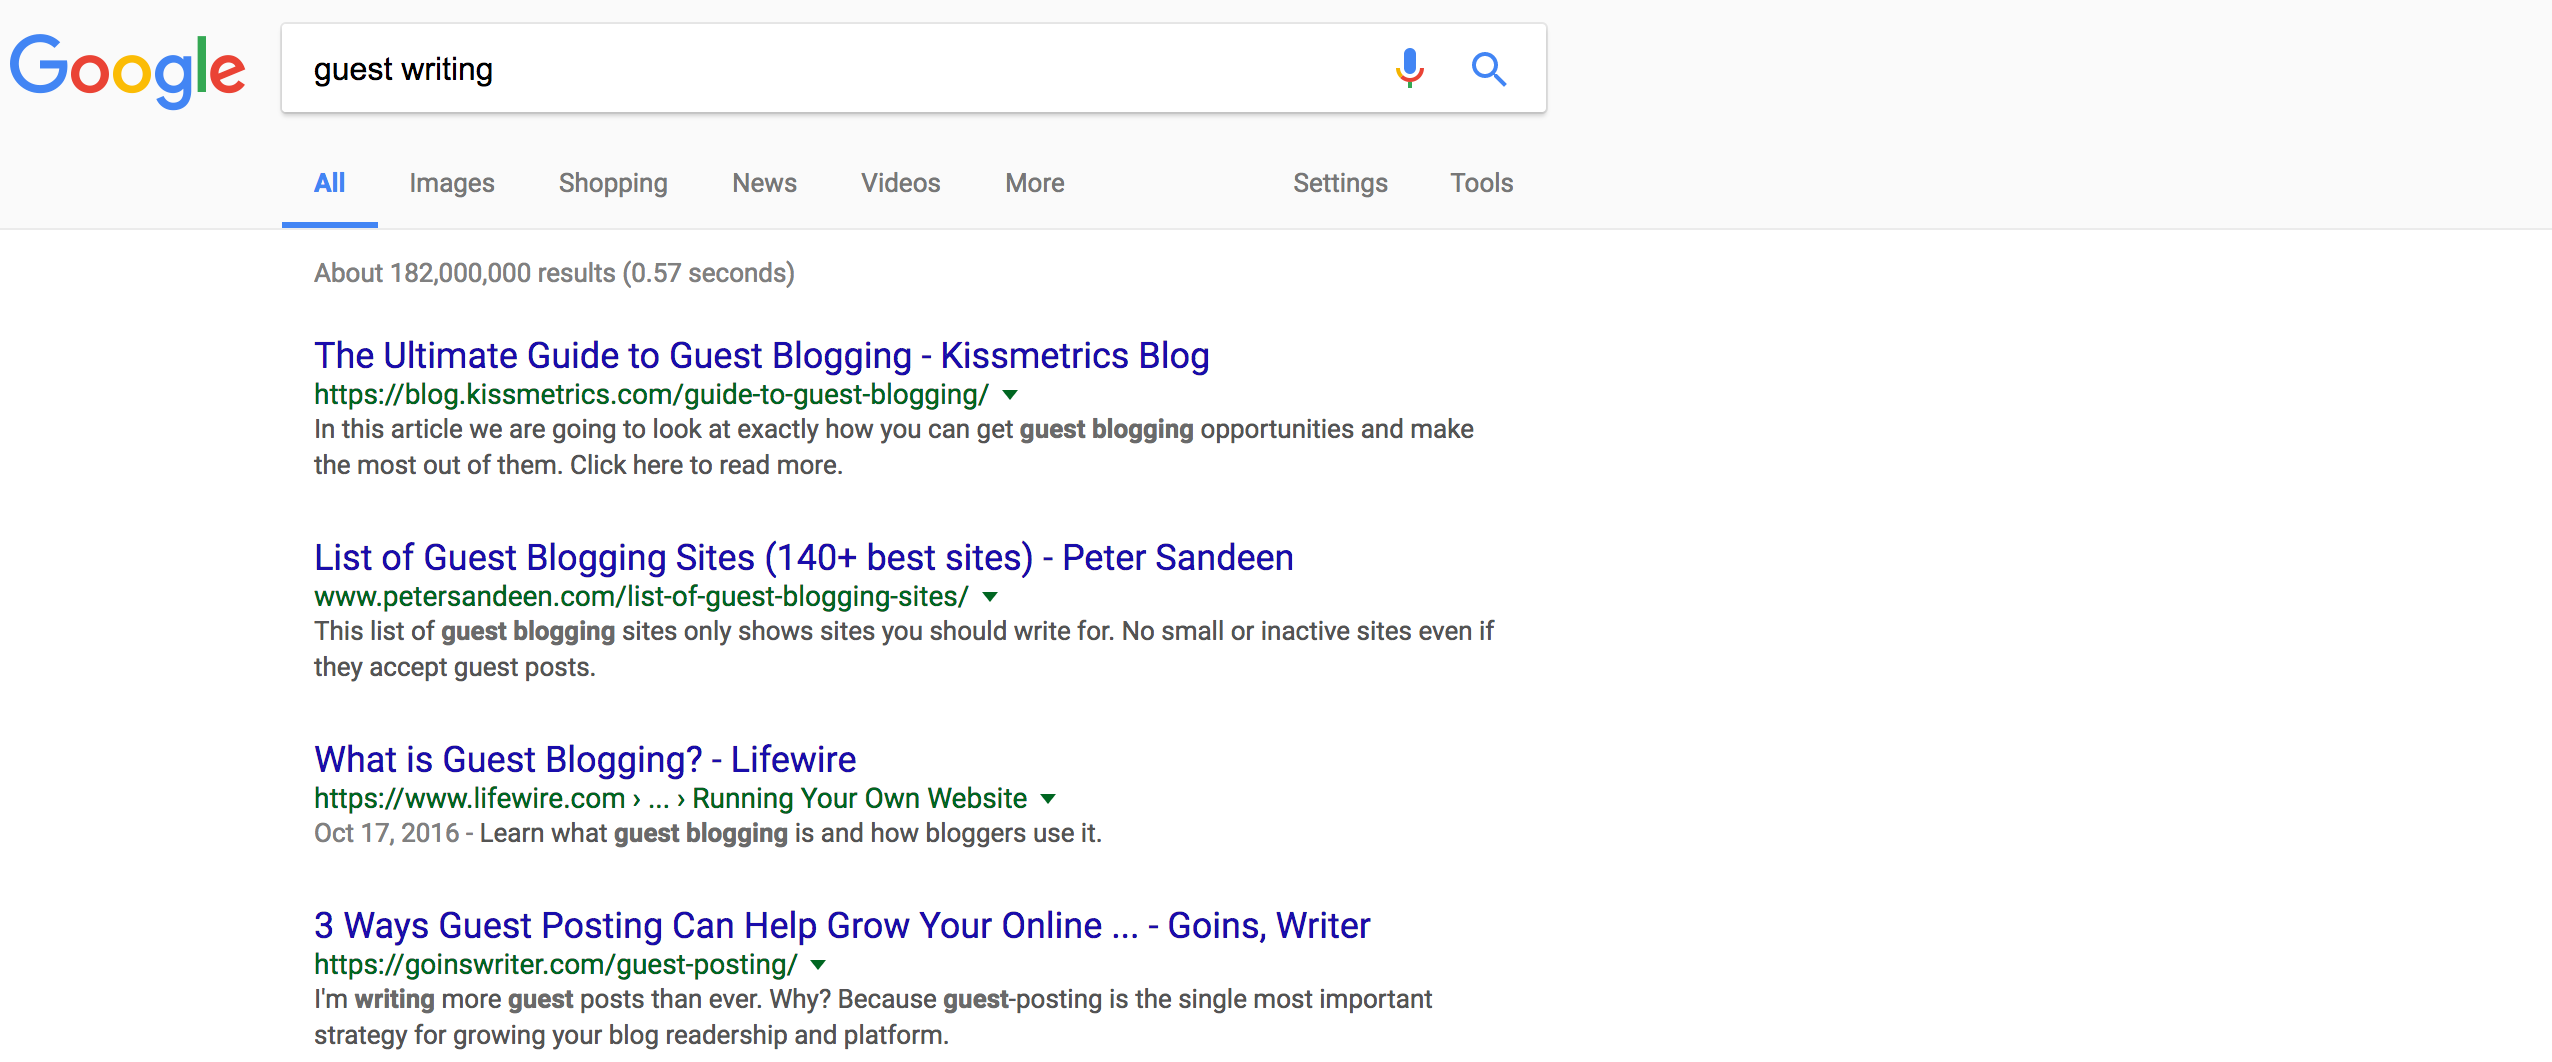 Google guest writing SERP